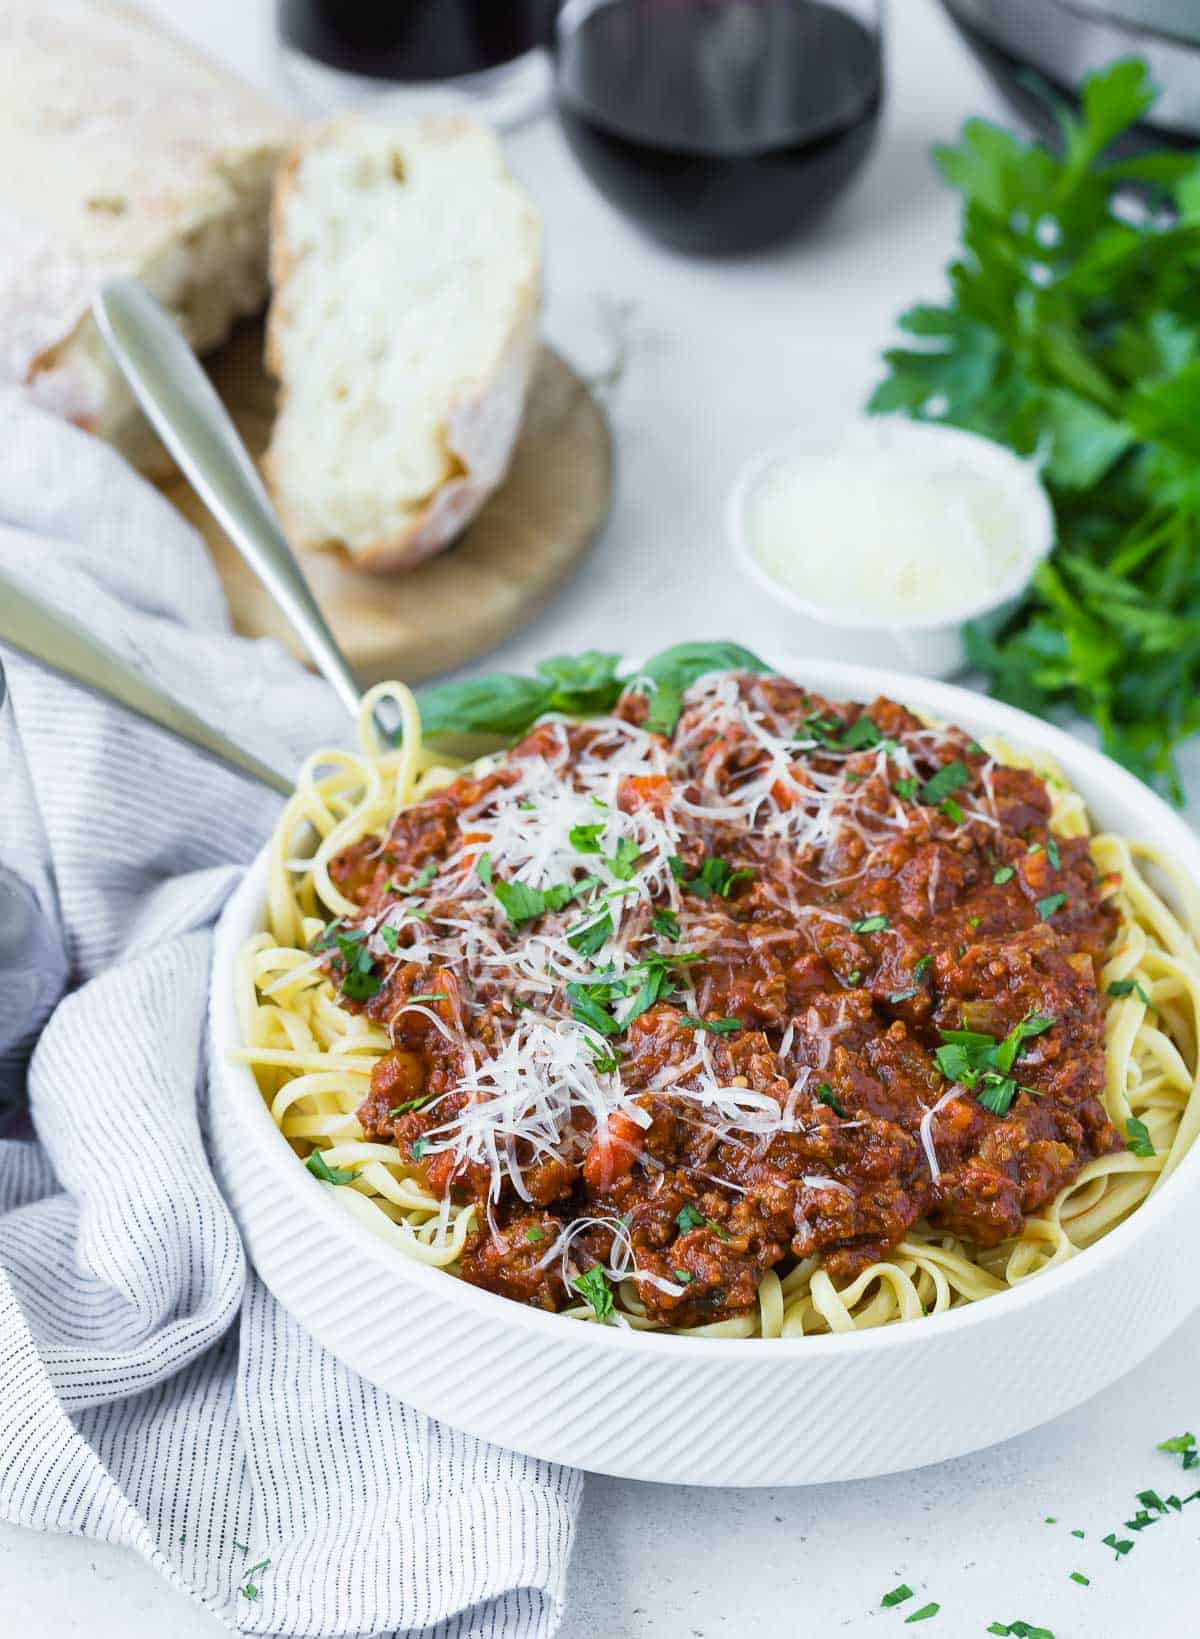 Spaghetti and meat sauce in a white bowl, with wine and bread in the background.